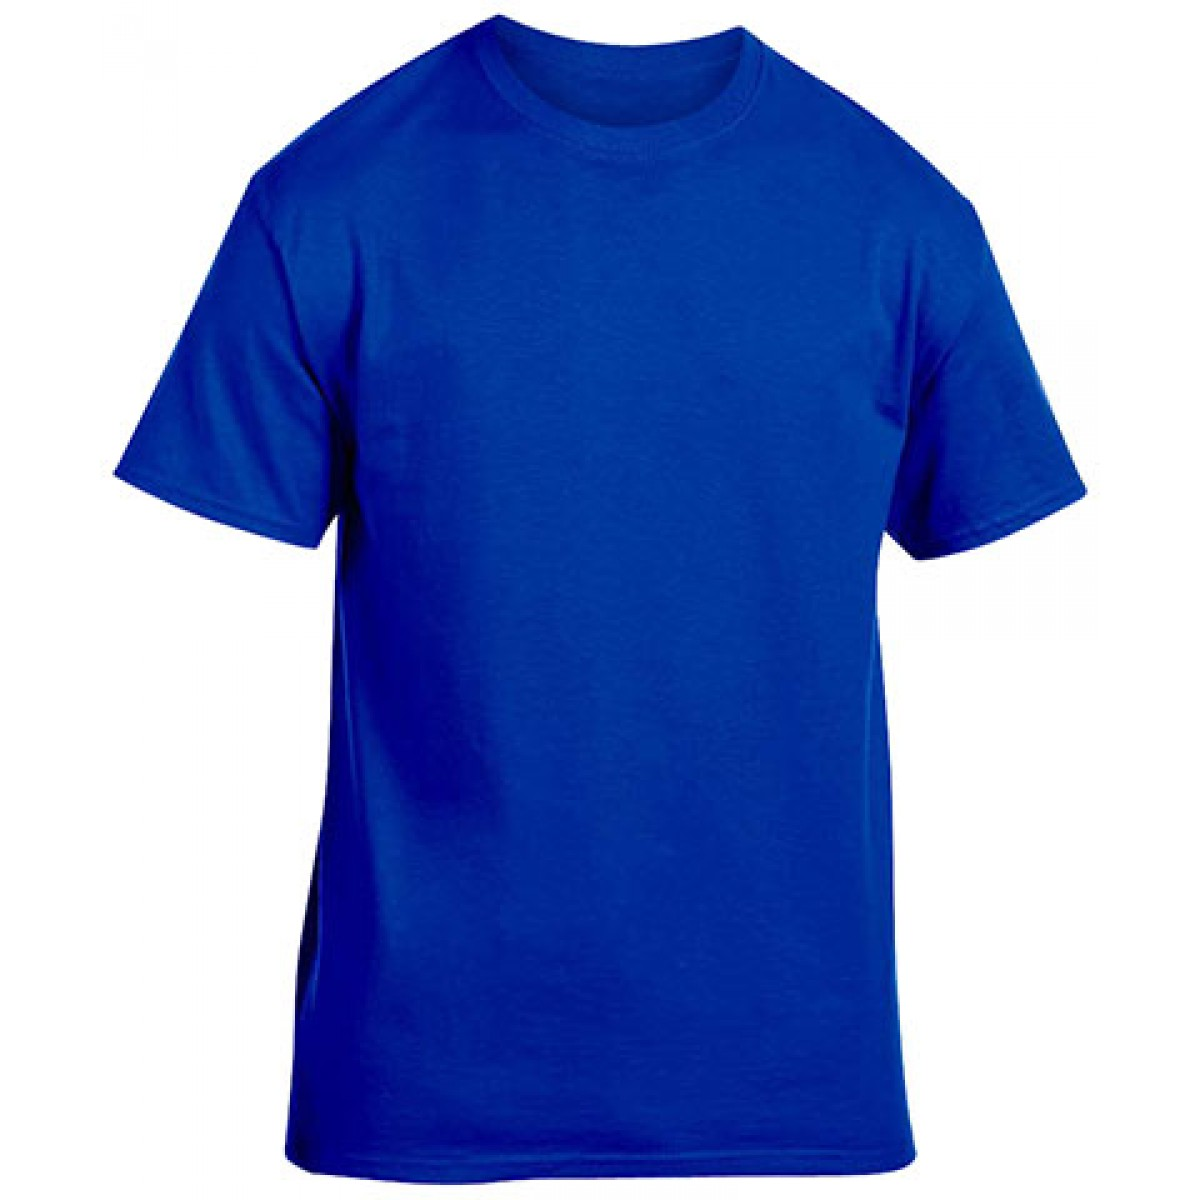 Cotton Short Sleeve T-Shirt-Royal Blue-S